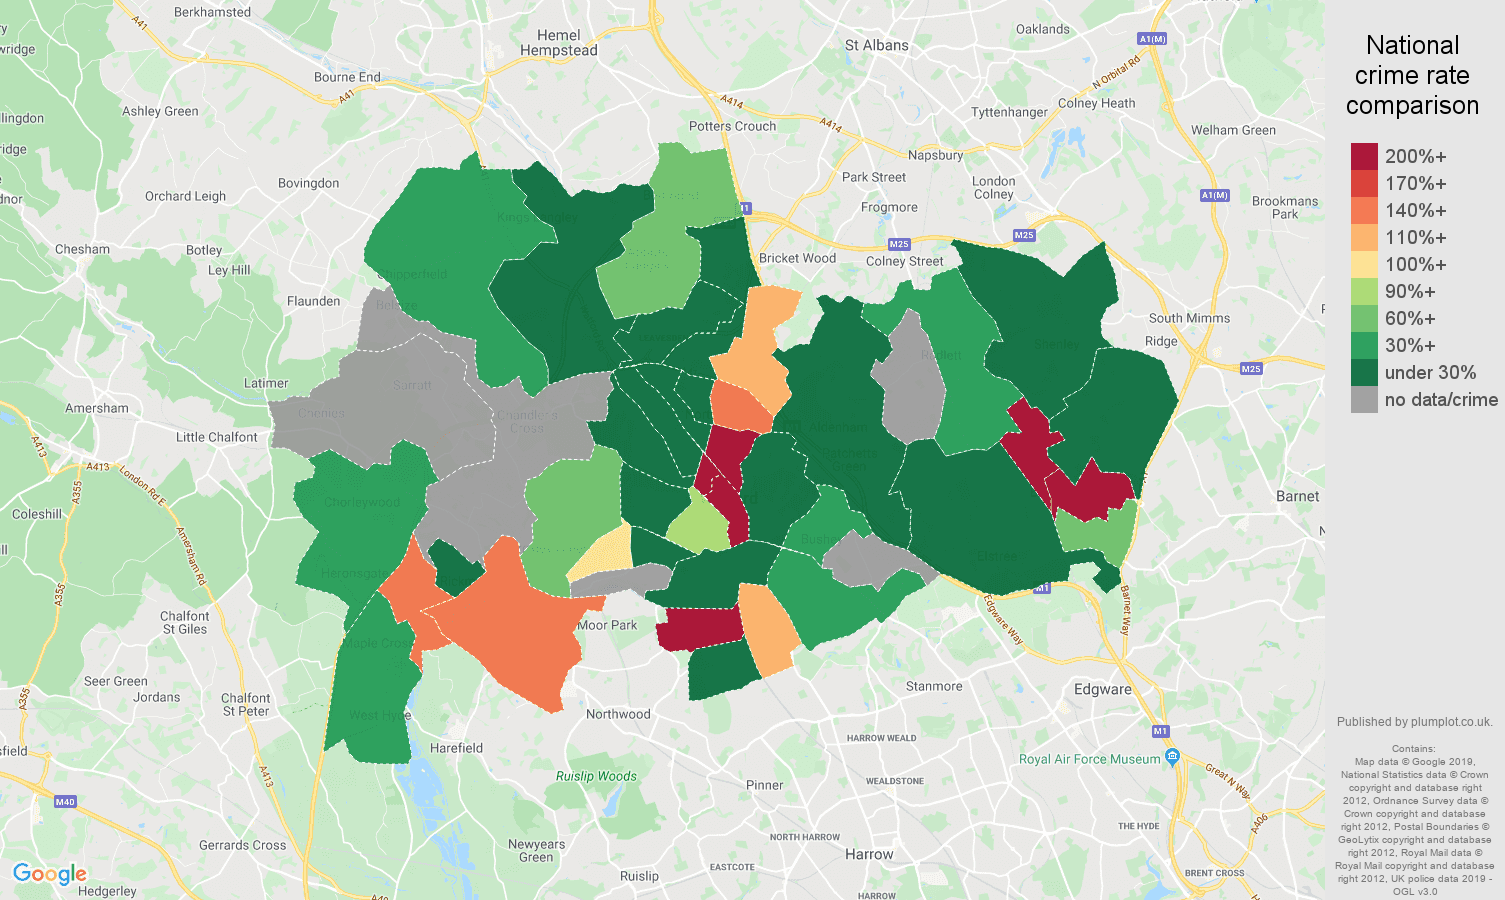 Watford shoplifting crime rate comparison map